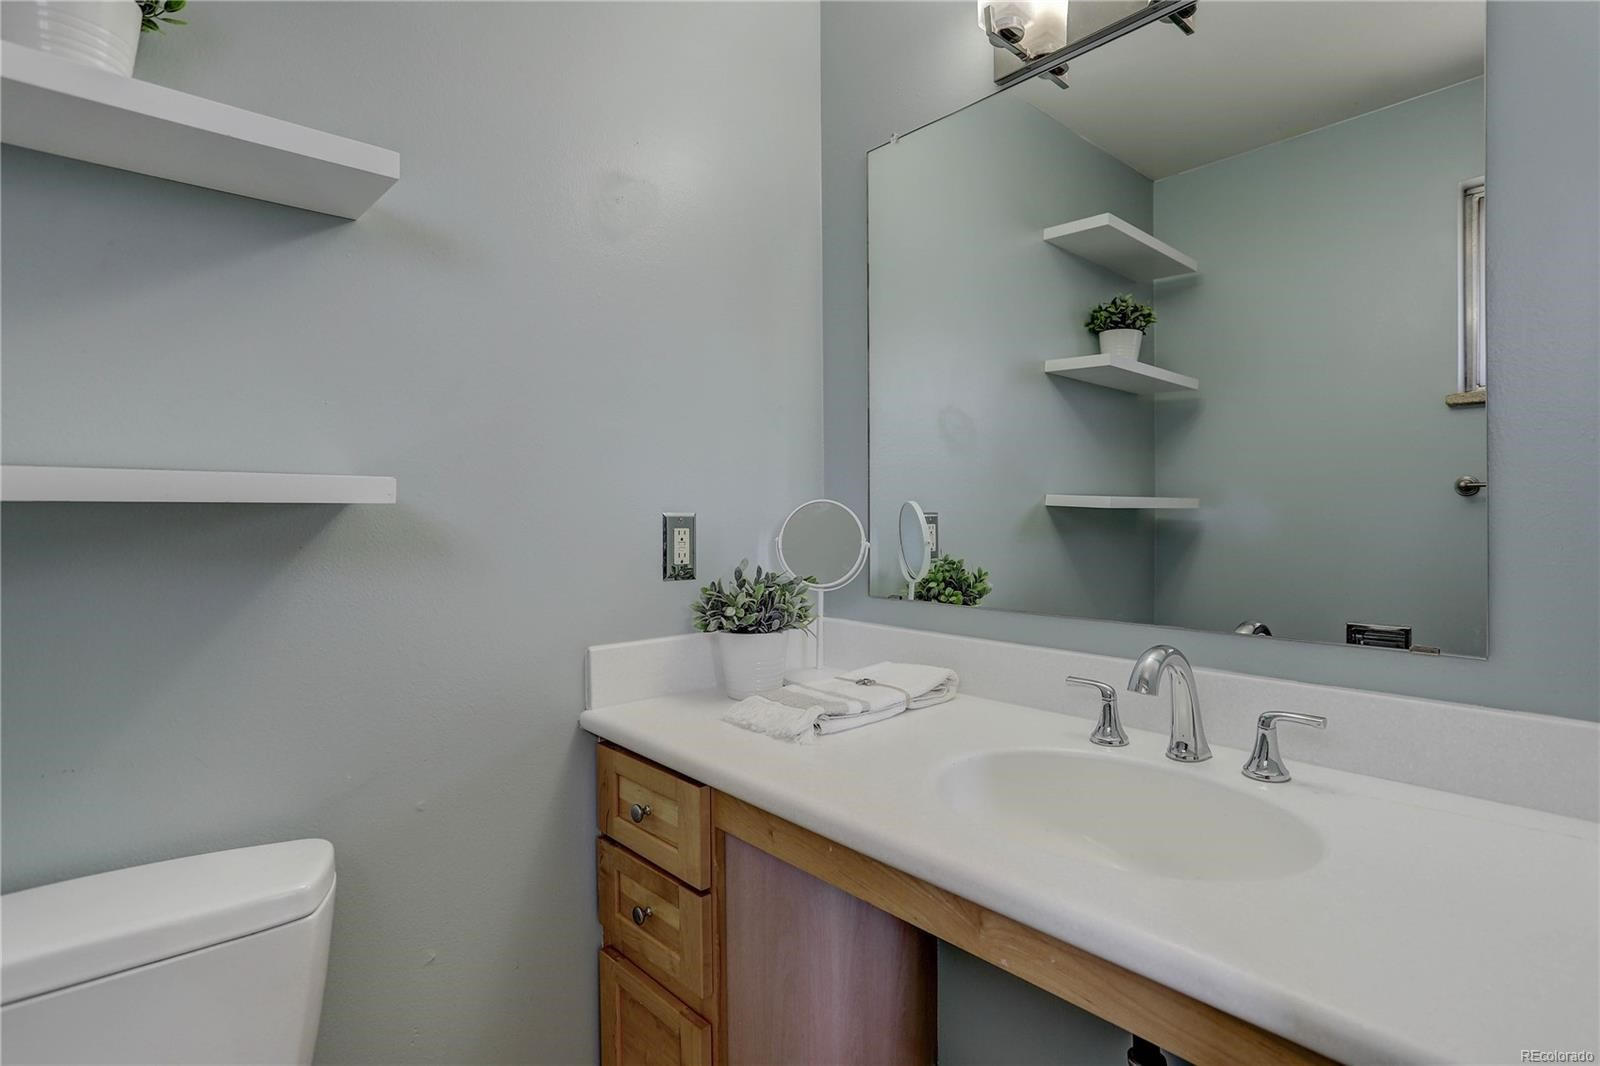 MLS# 2968148 - 19 - 2931 S Downing Street, Englewood, CO 80113